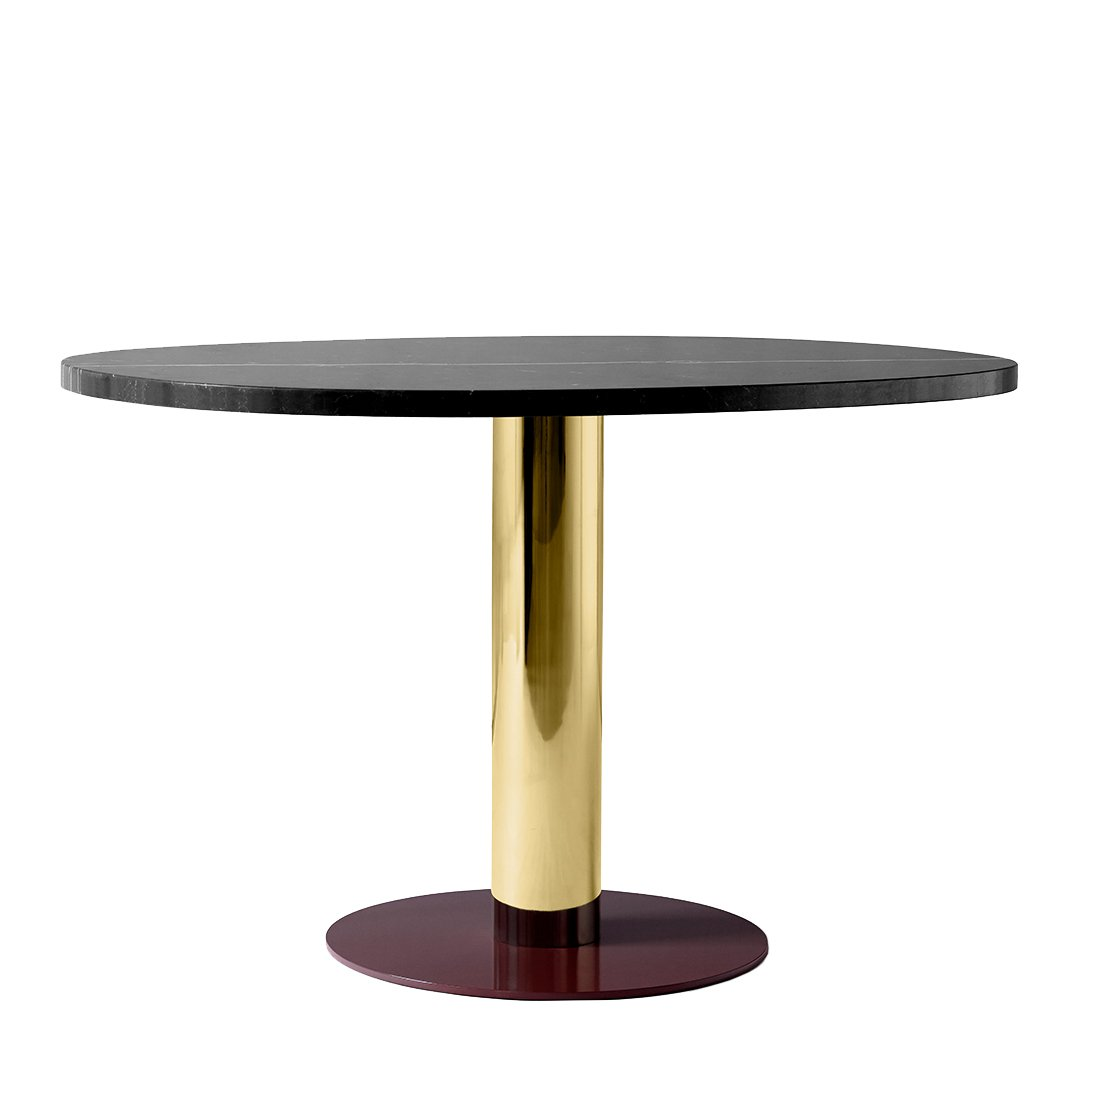 &Tradition Mezcla Eettafel JH22